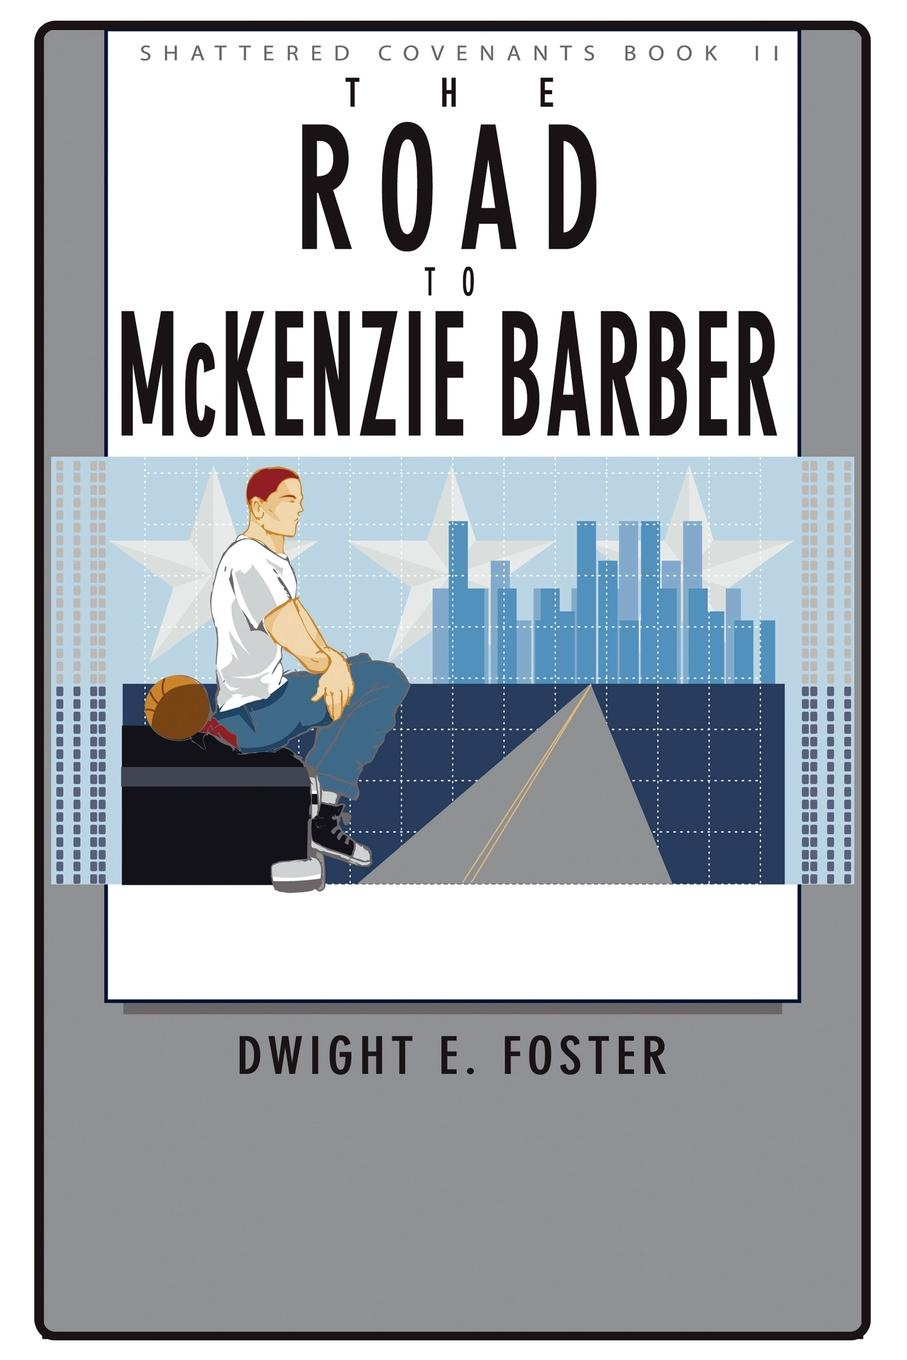 Dwight E. Foster Shattered Covenants, Book II. The Road to McKenzie Barber p mckenzie armstrong additudes